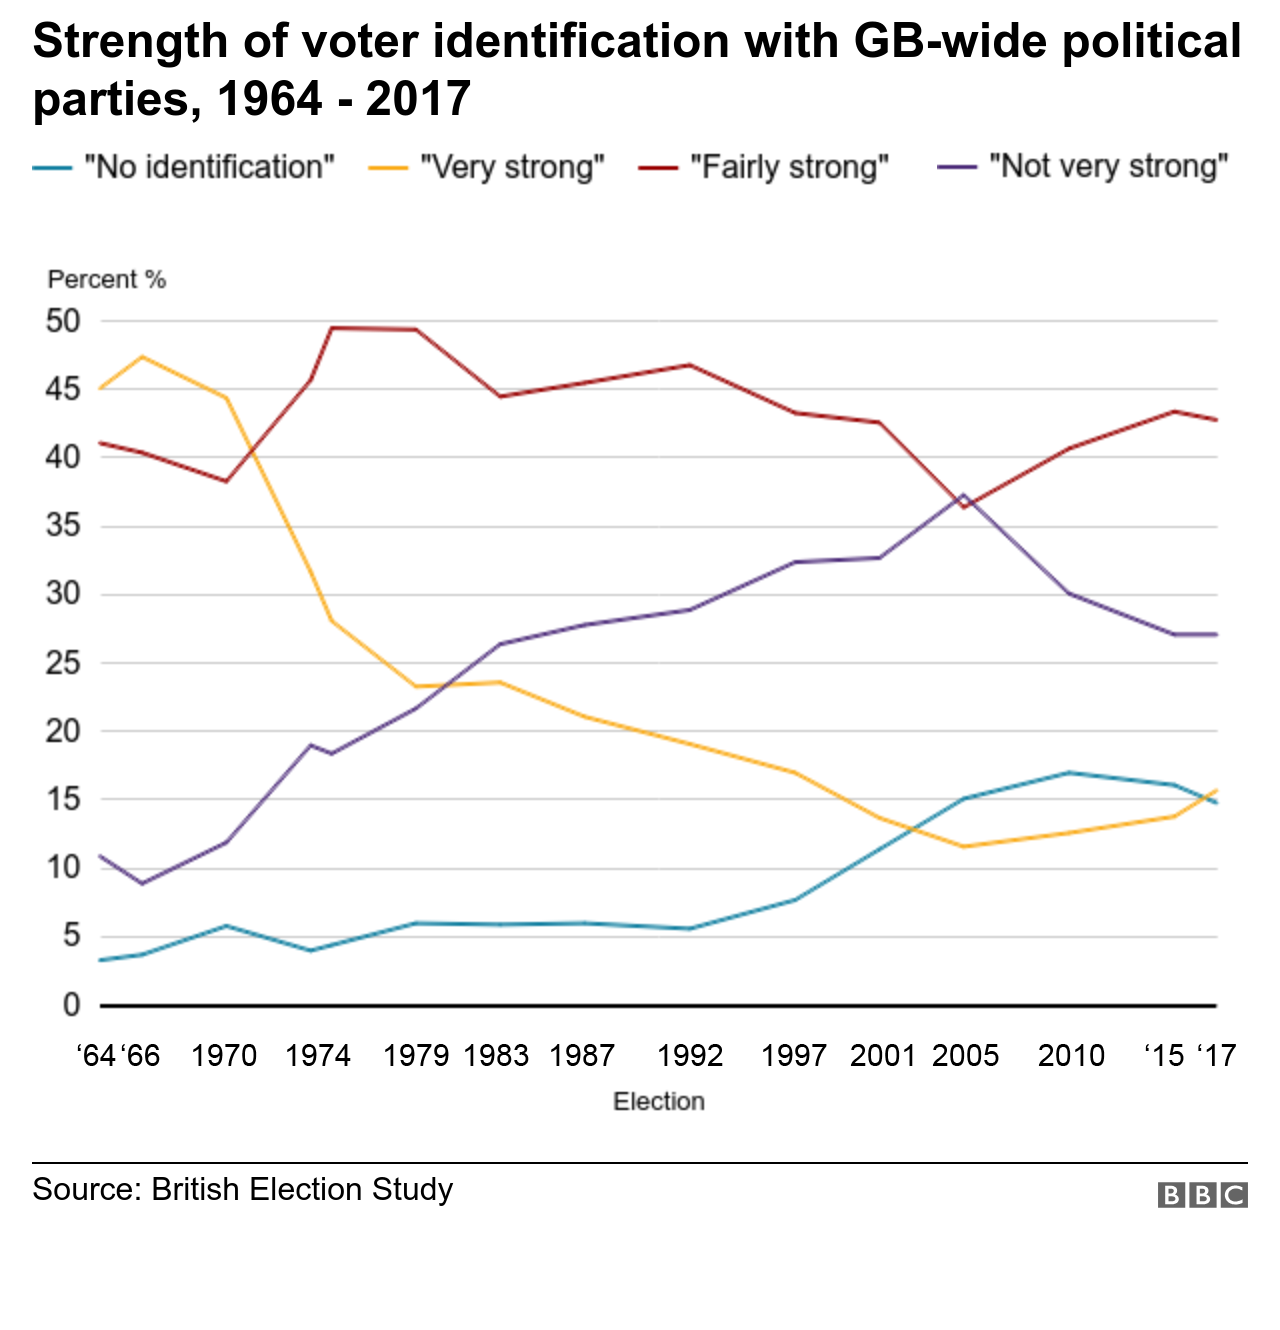 Graph: Strength of voter identification with GB-wide political parties, 1964-2017